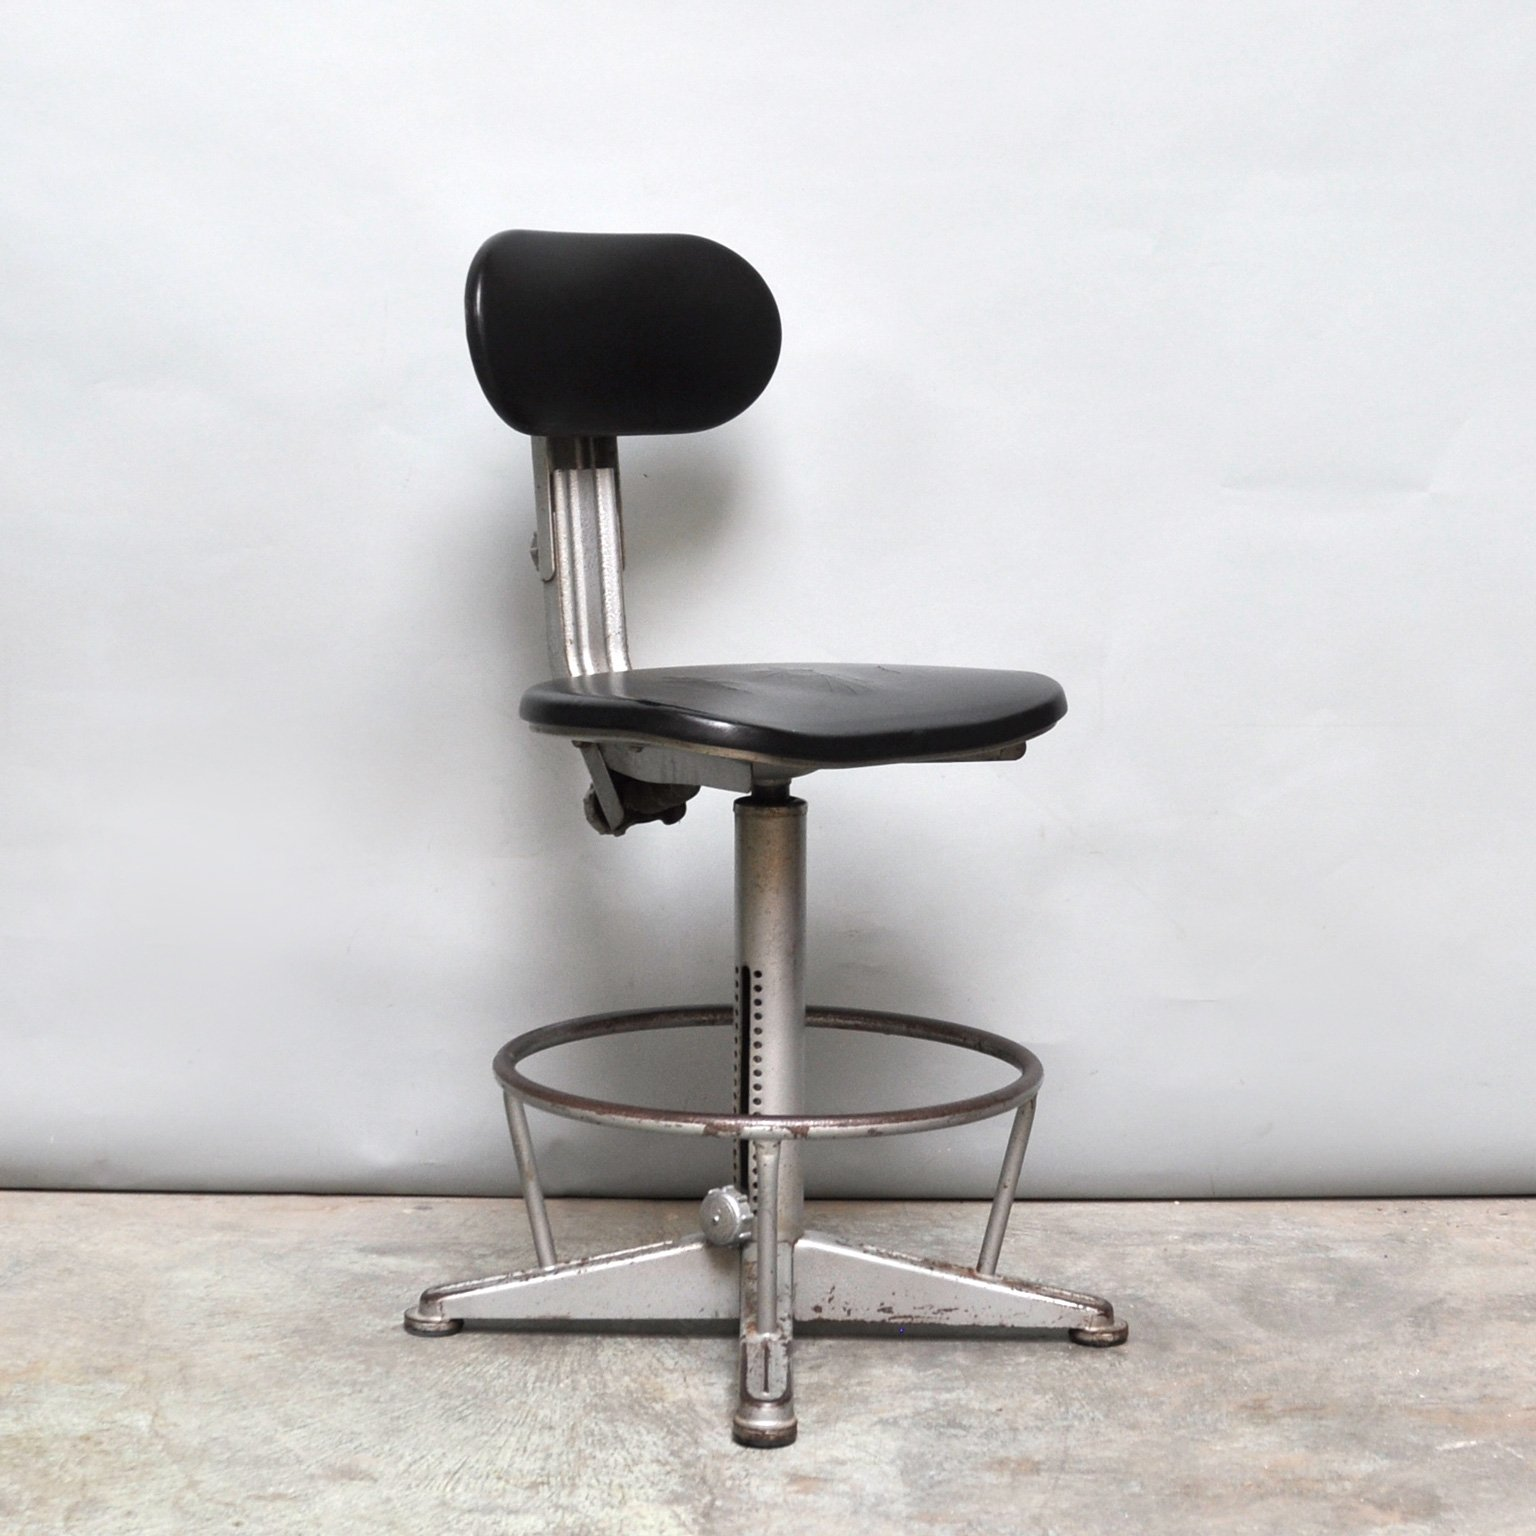 vintage office chairs. Vintage Office Chair, 1960s Chairs K